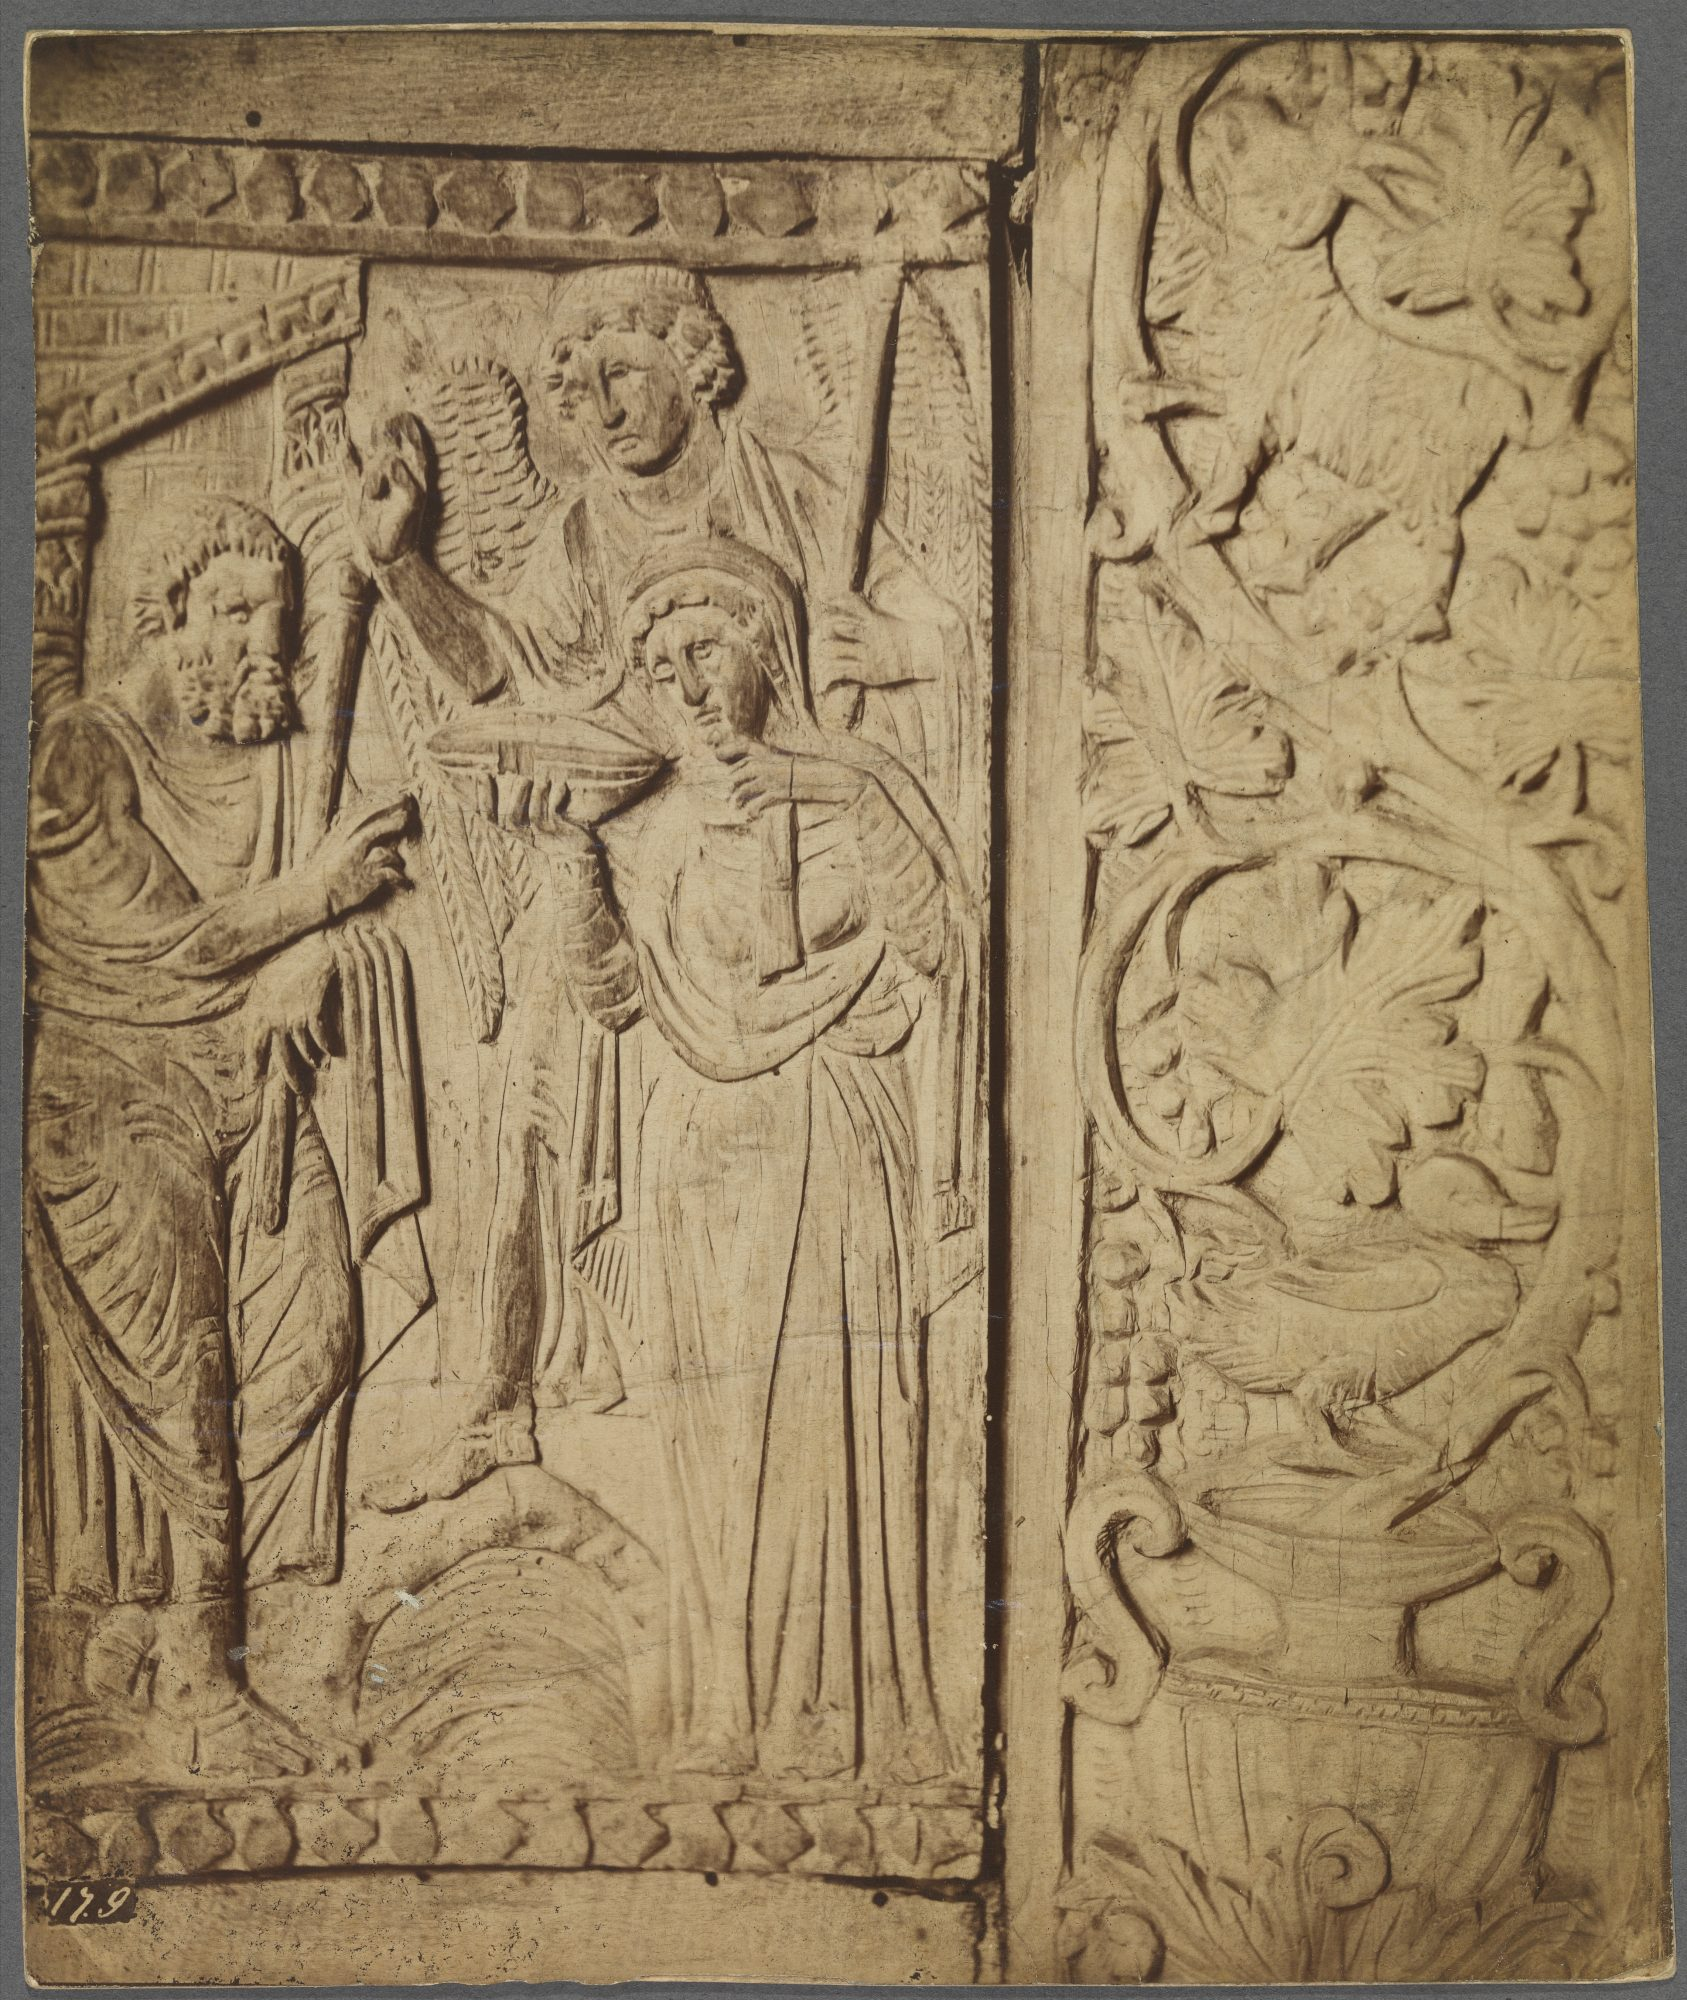 Unknown artist, Relief carving Madonna with Angel and Saint, 19th–20th century. Photograph, 9 x 7 1/2 in. Williams College Museum of Art, Prendergast Archive and Study Center, Gift of Mrs. Charles Prendergast, A.1.355